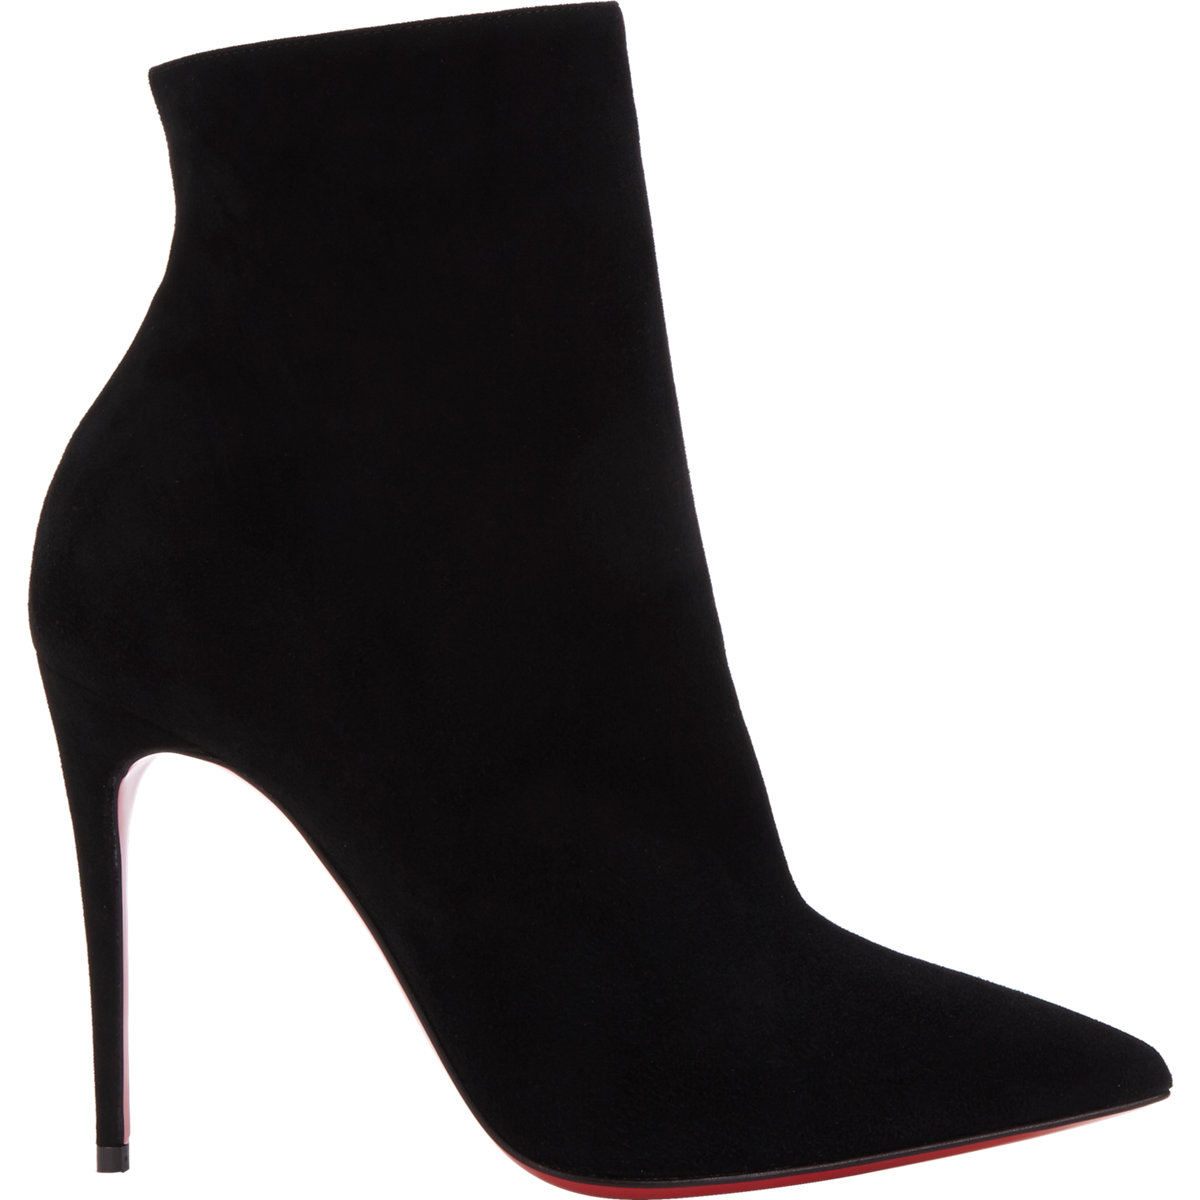 More from Christian Louboutin